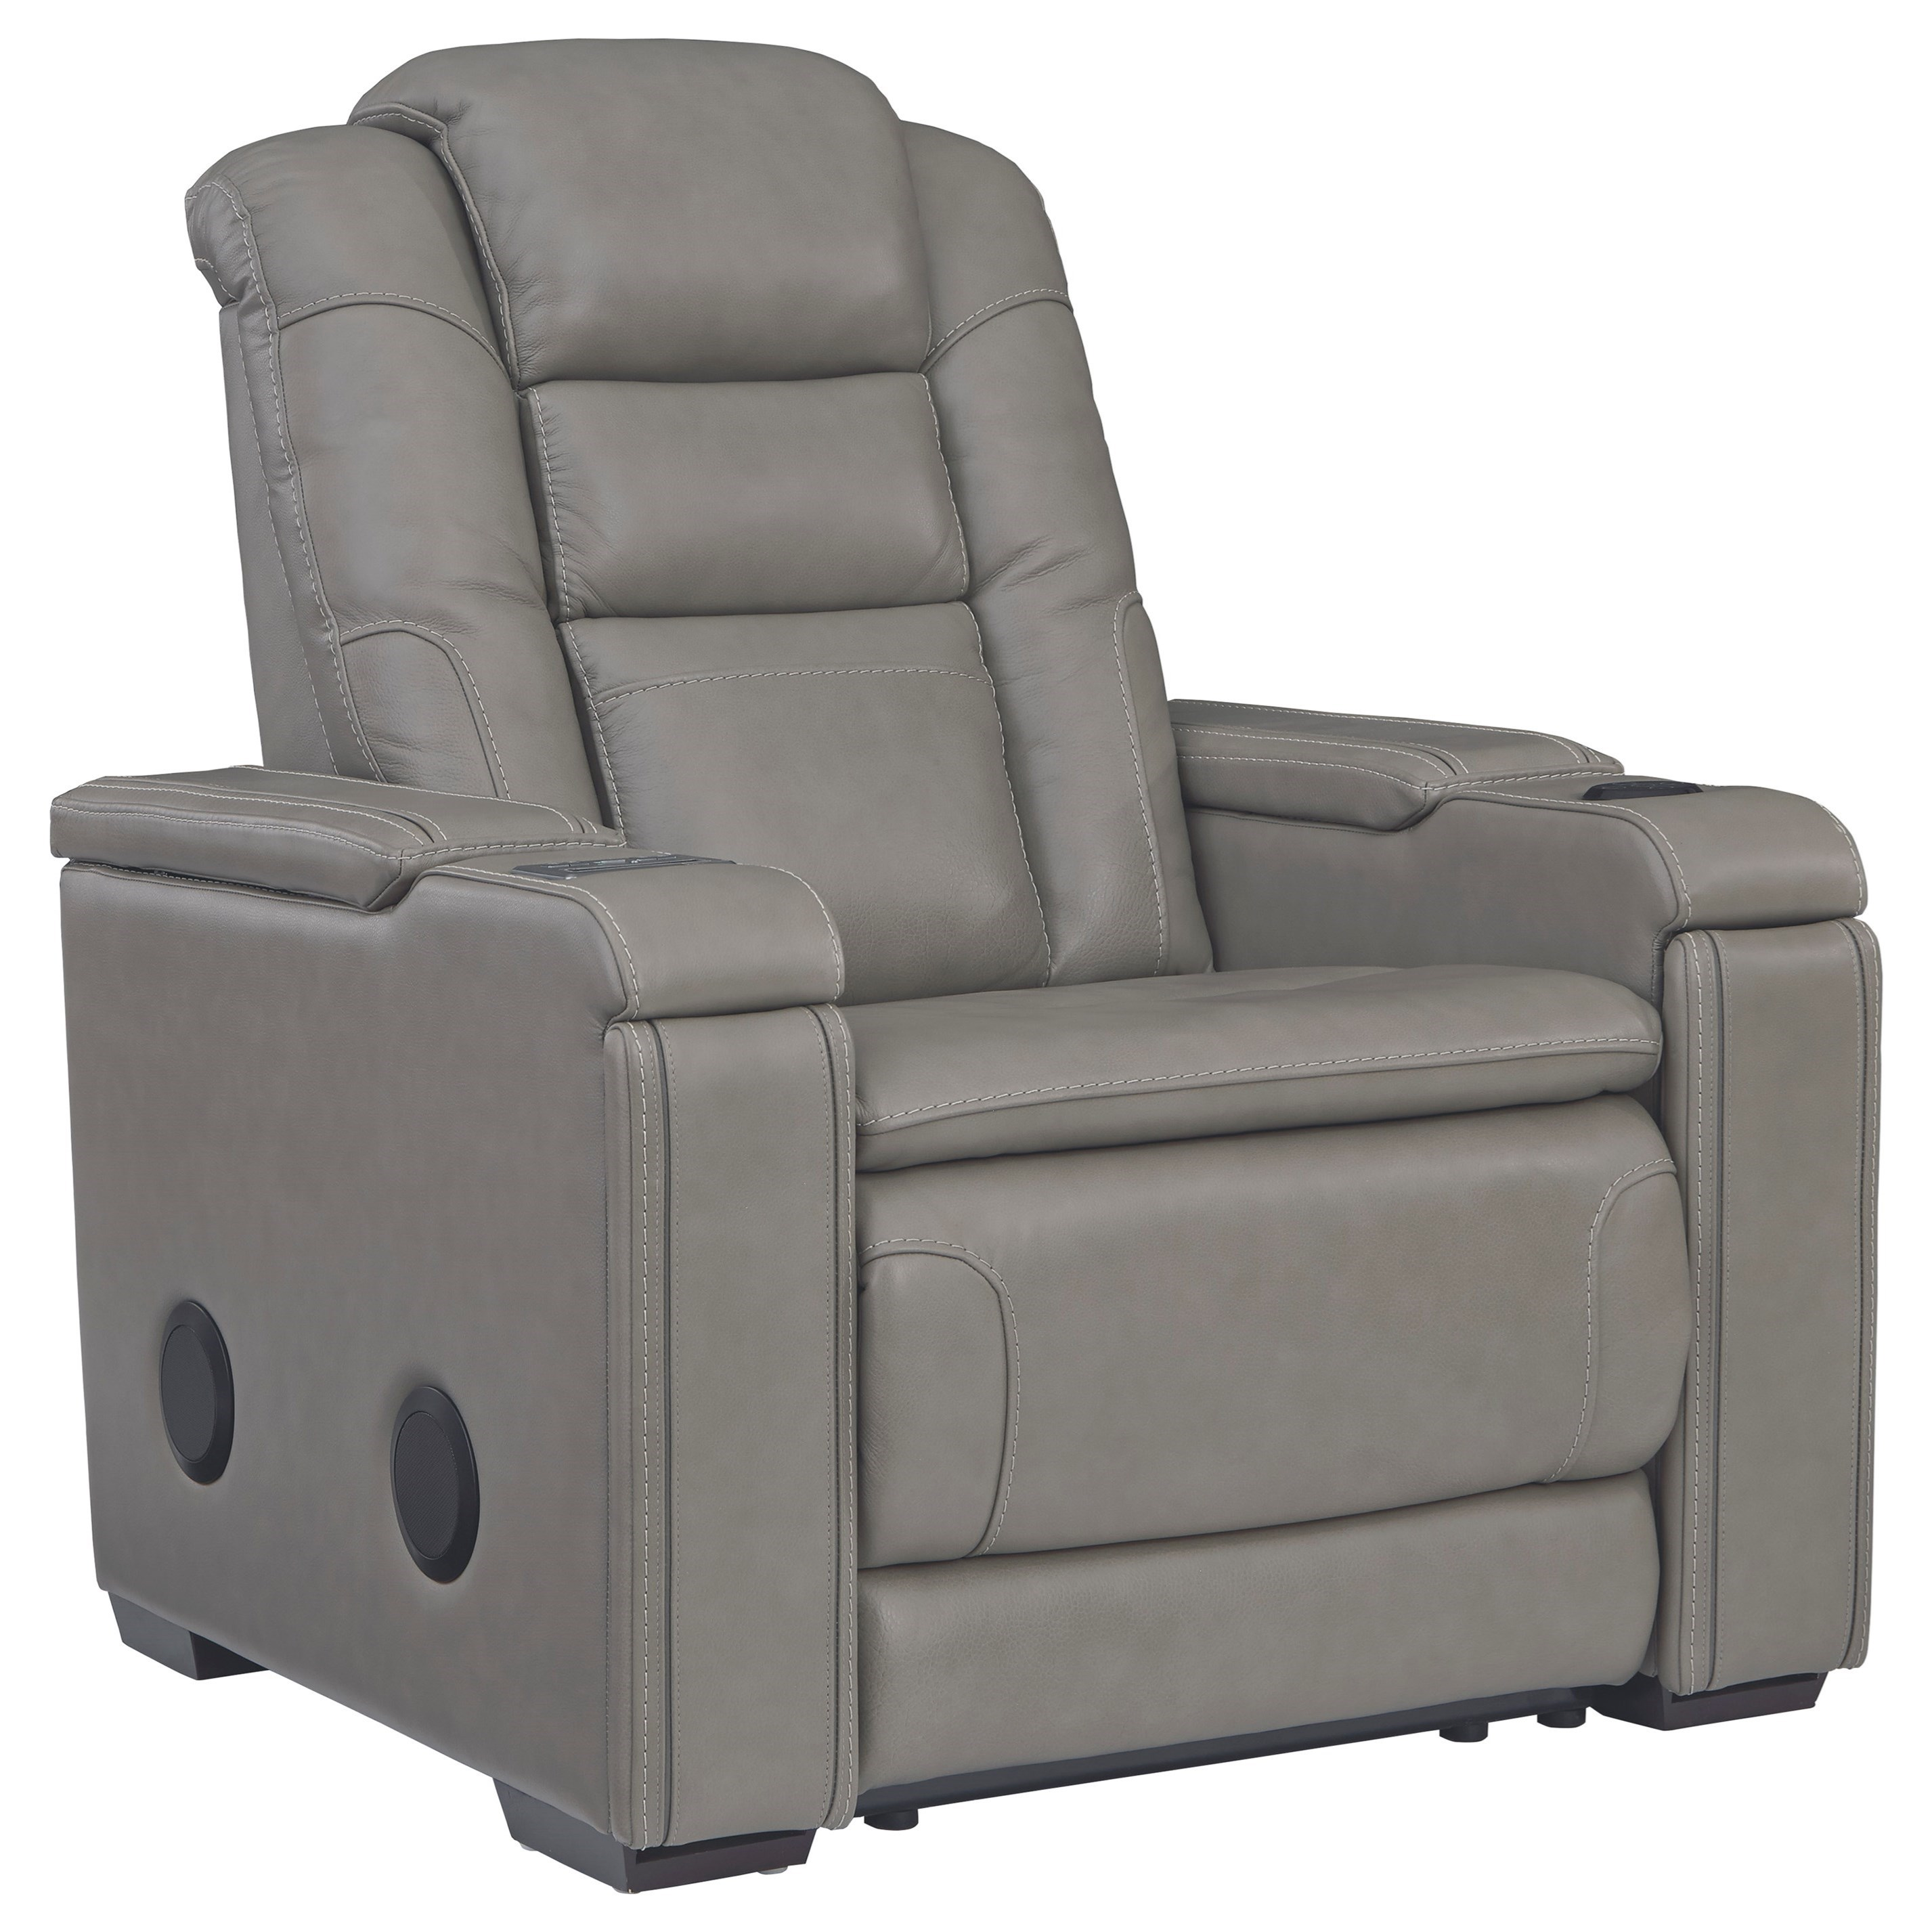 Boerna Power Recliner with Adjustable Headrest by Signature Design by Ashley at Sparks HomeStore